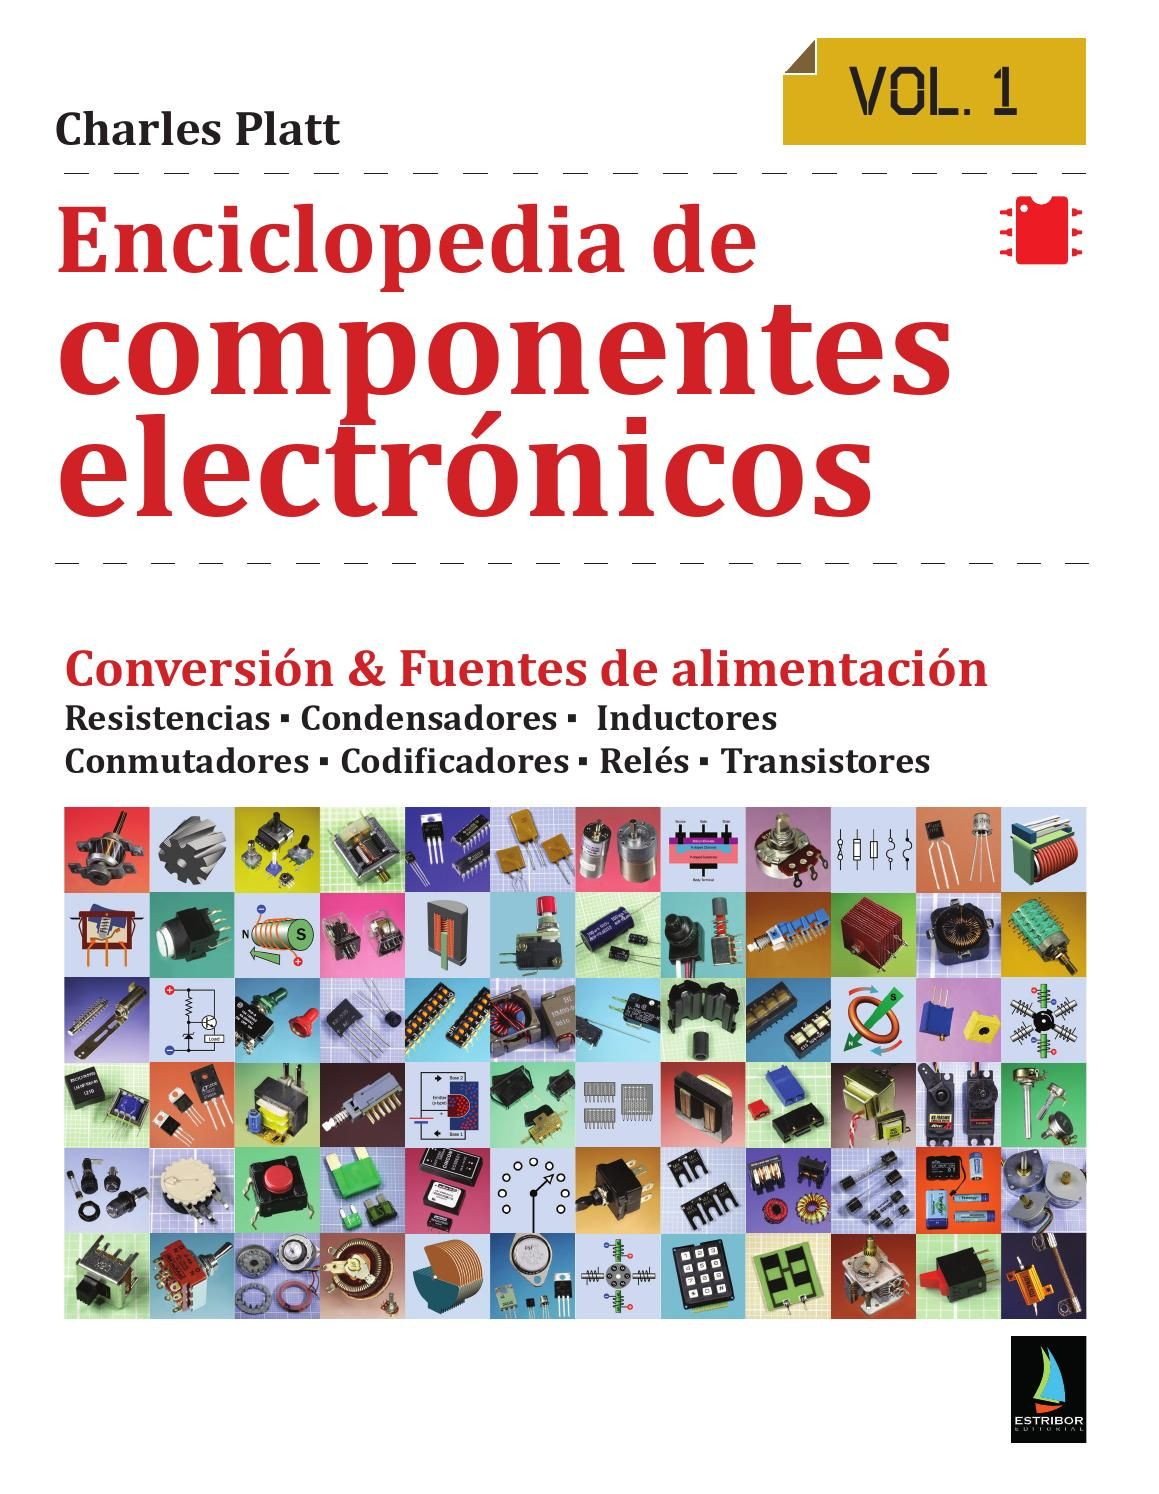 Libros De Electronica Gratis Para Descargar Resumen Libro Enciclopedia Vol 1 Arduino And Tech